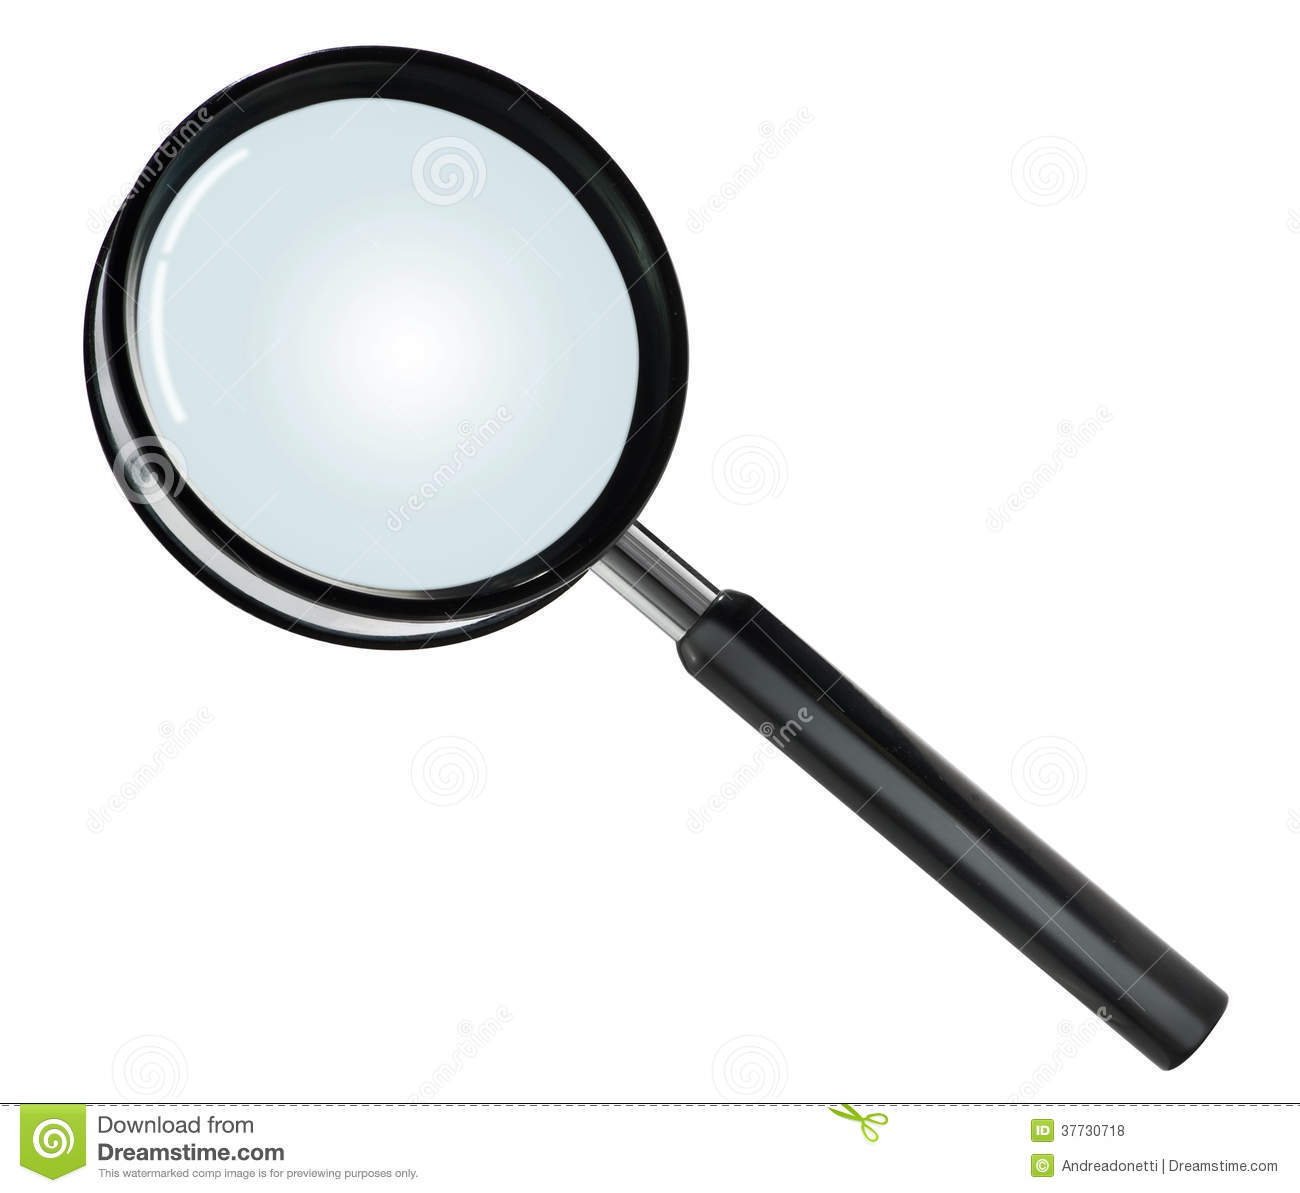 Close-up of a basic hand lens or magnifying glass with black plastic ...